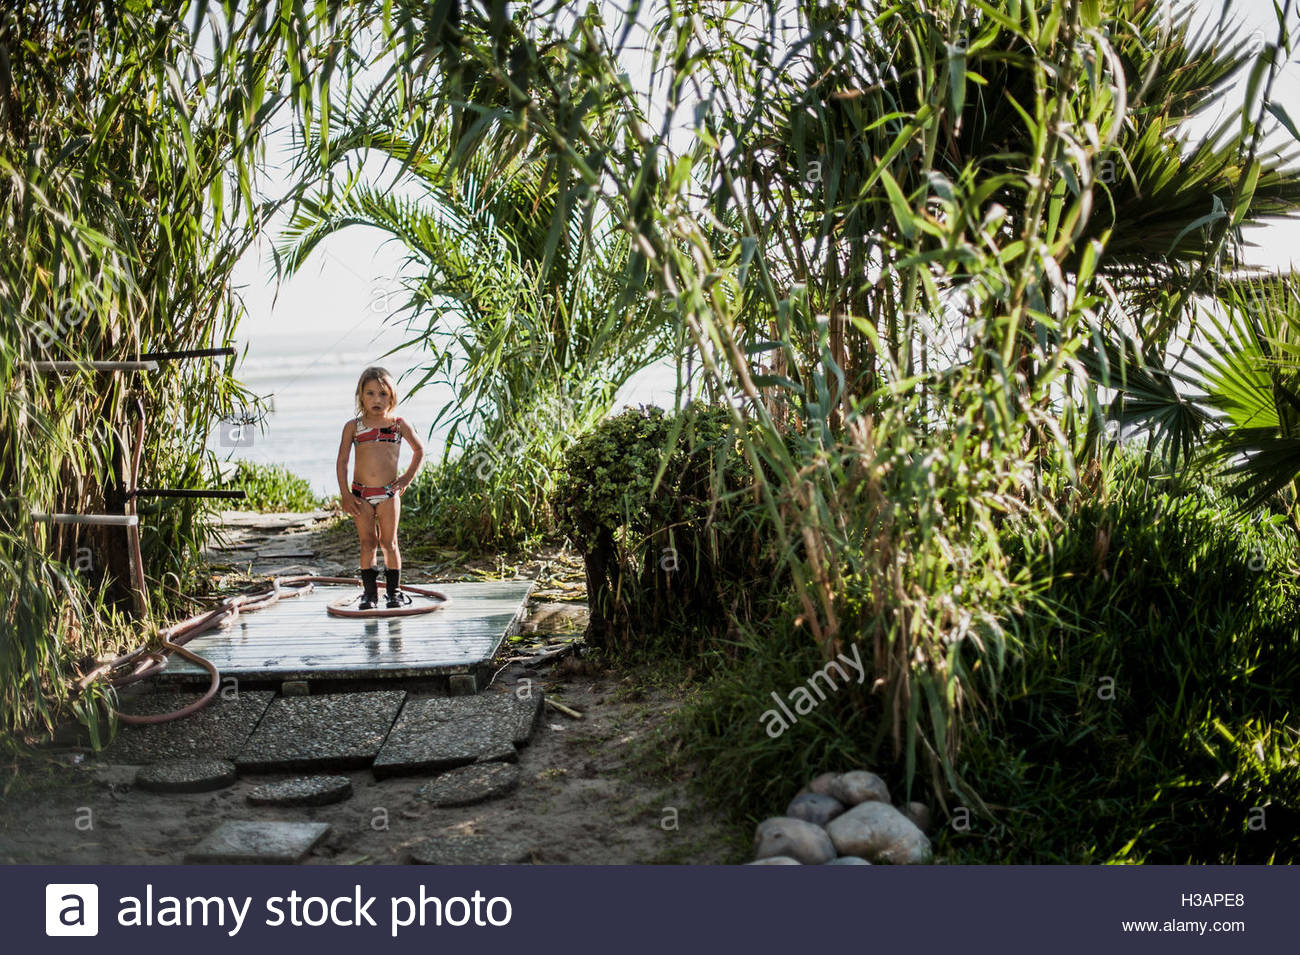 little girl rinsing off after playing in the ocean - Stock Image